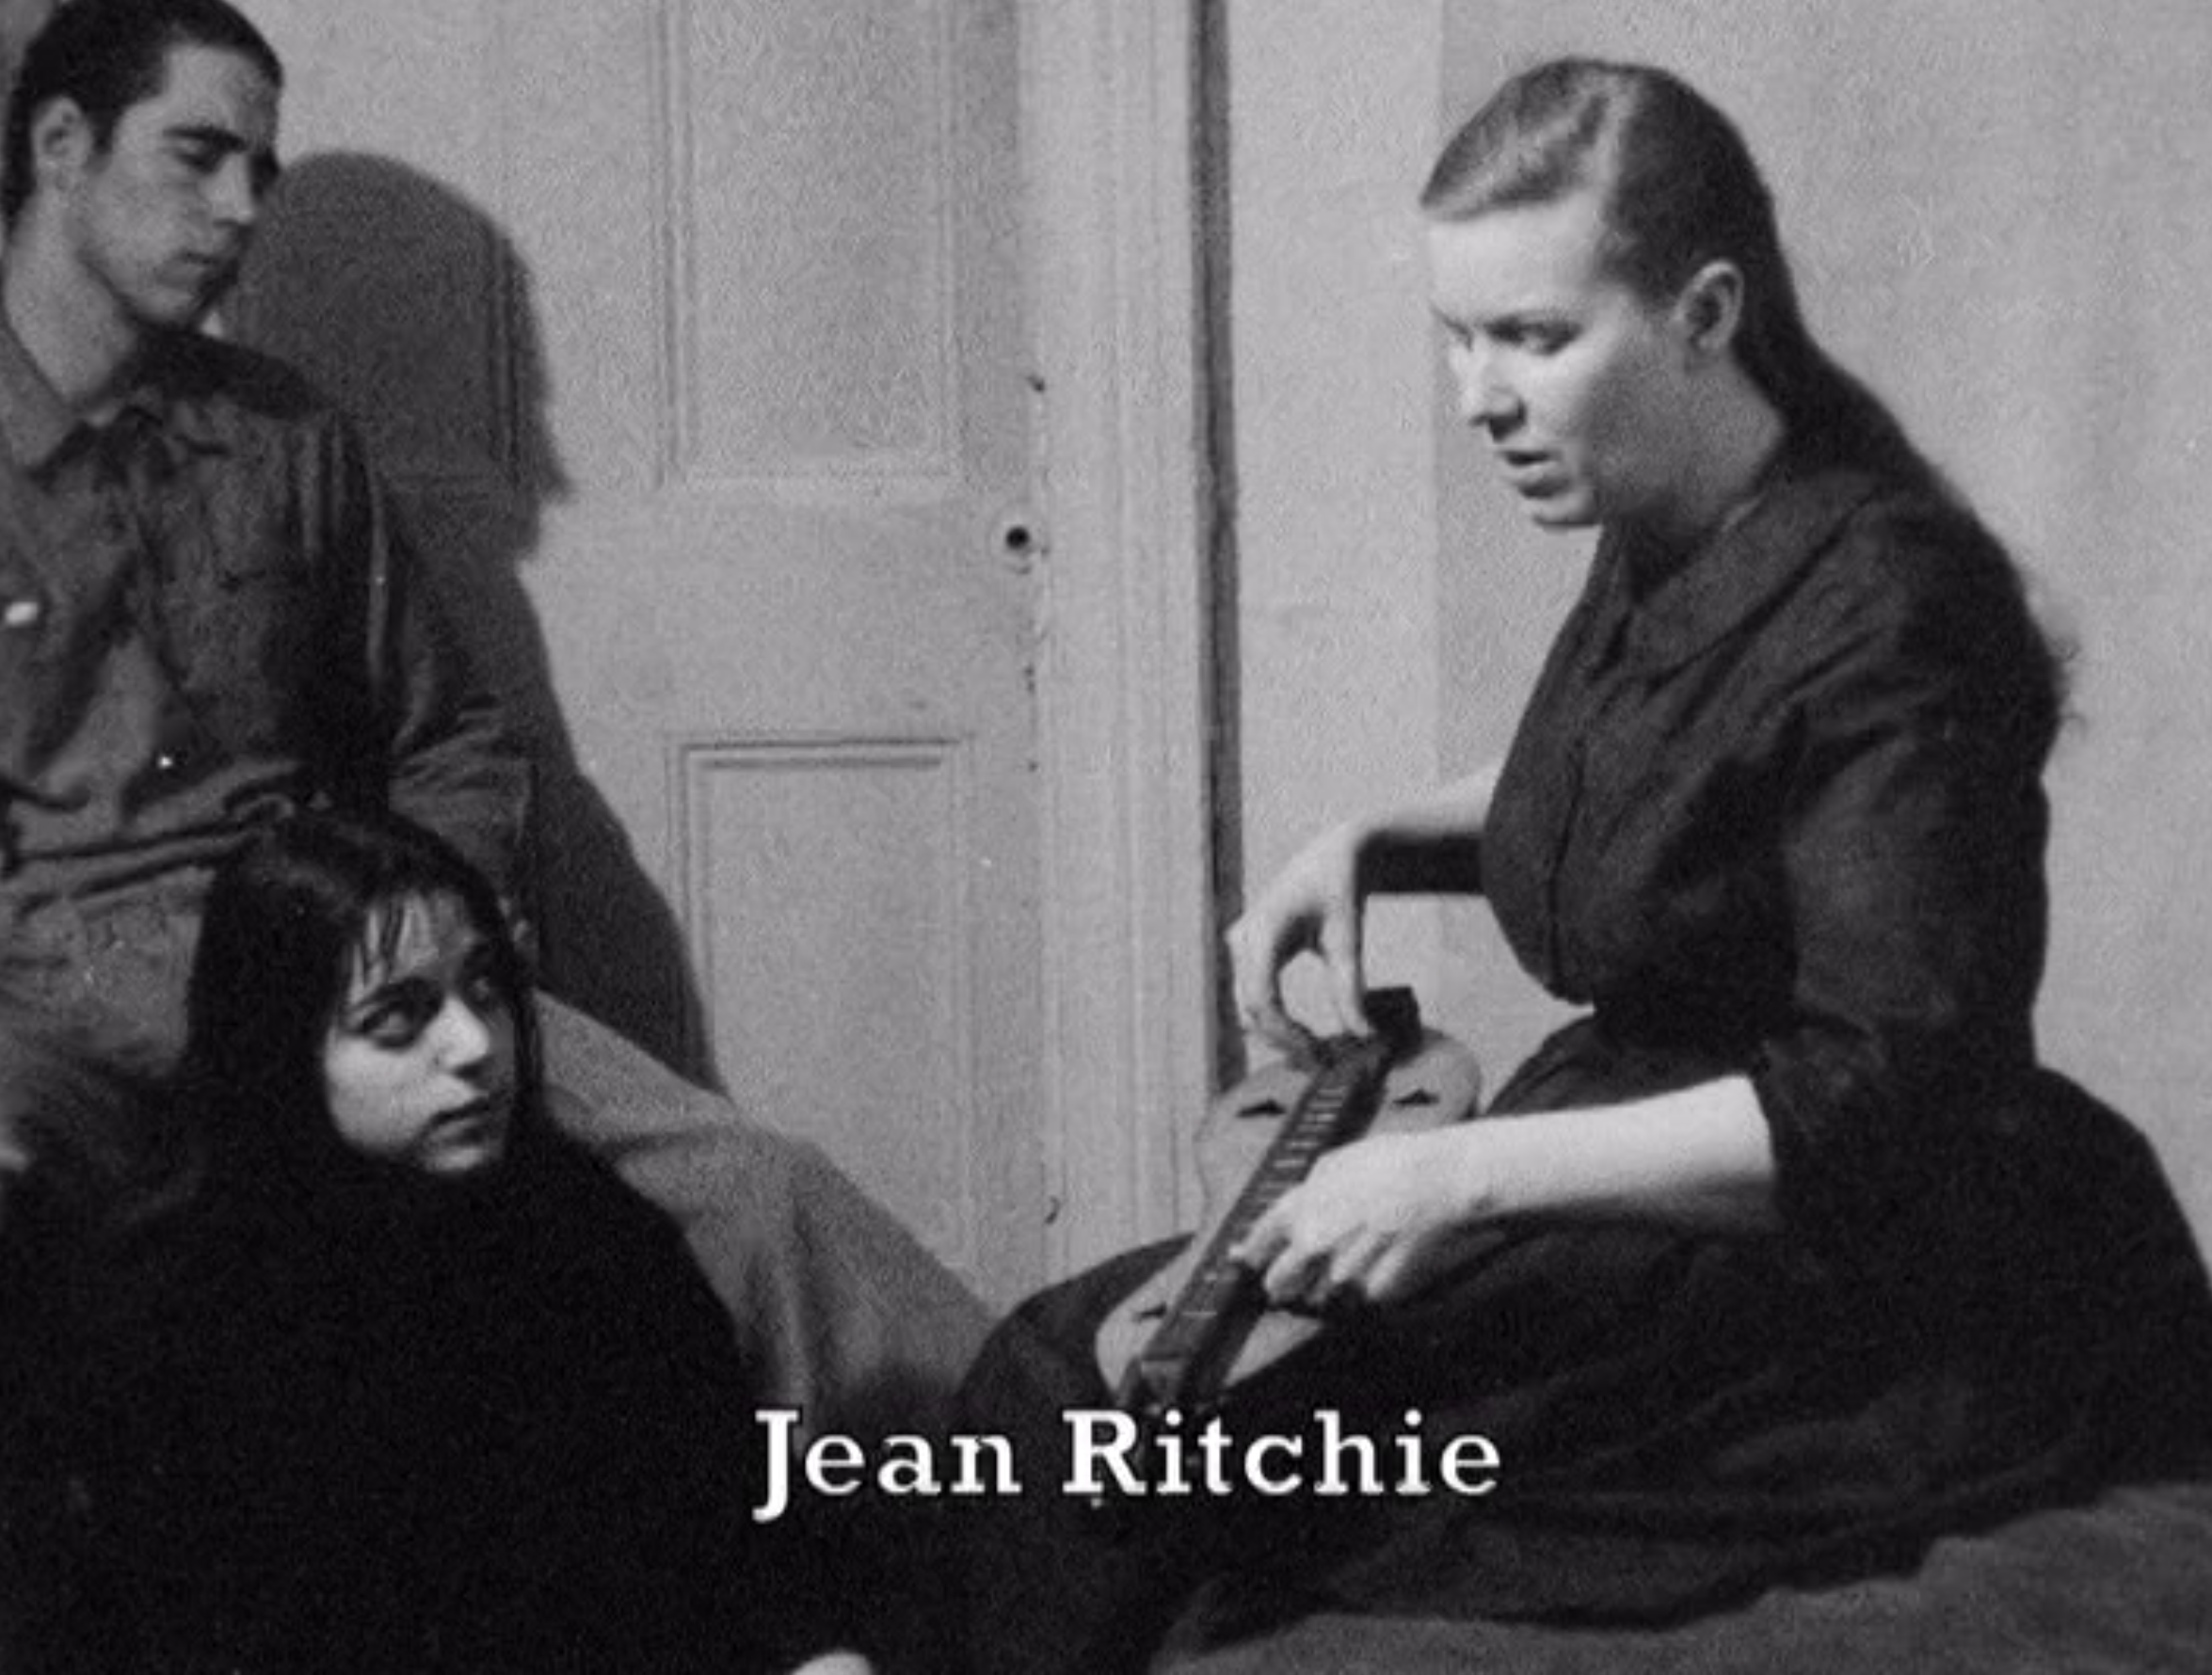 jean ritchie.png